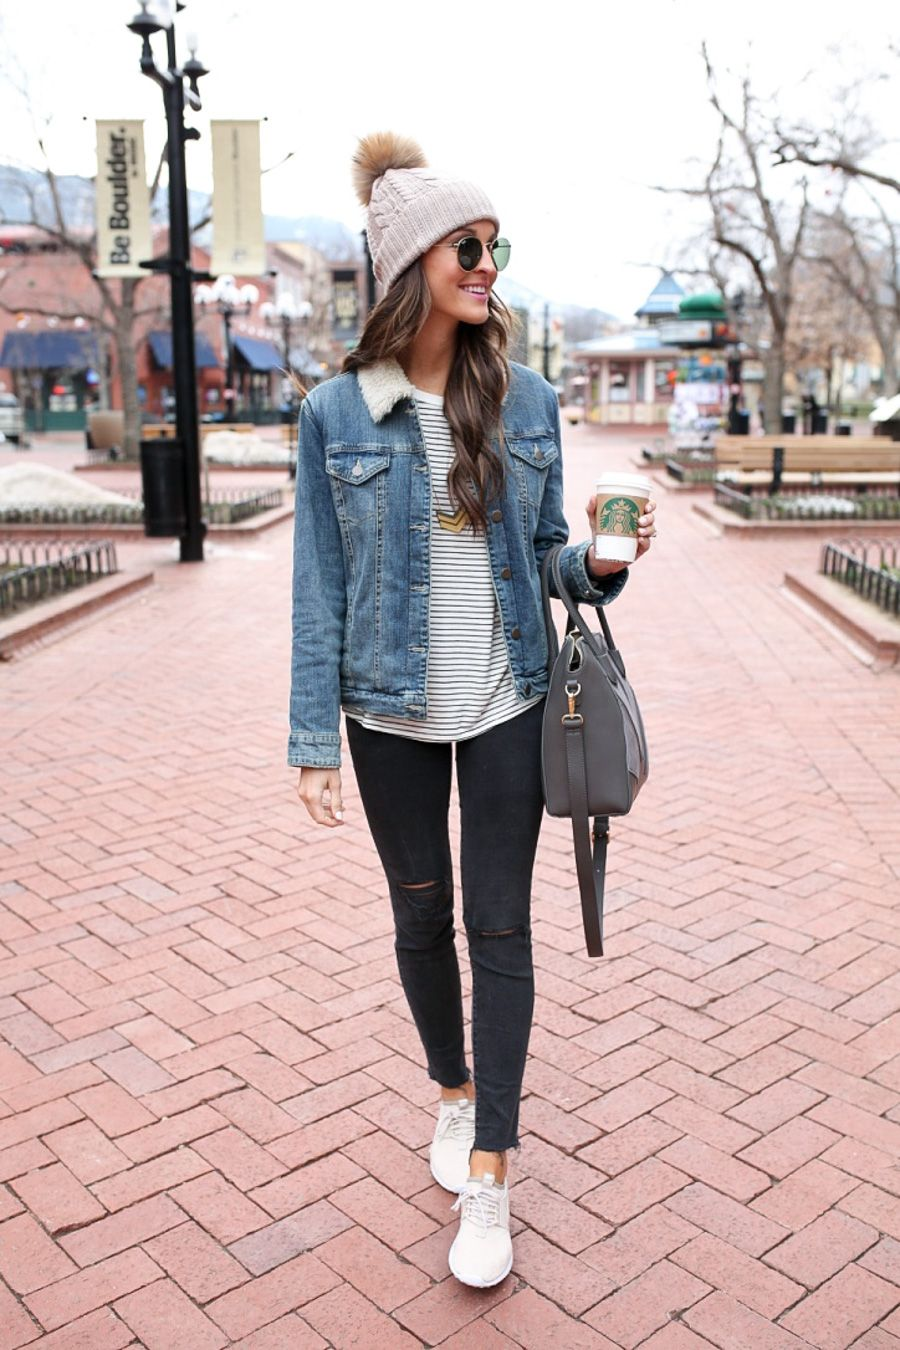 Sneaker Girl All Day Everyday Pinterest Boulder